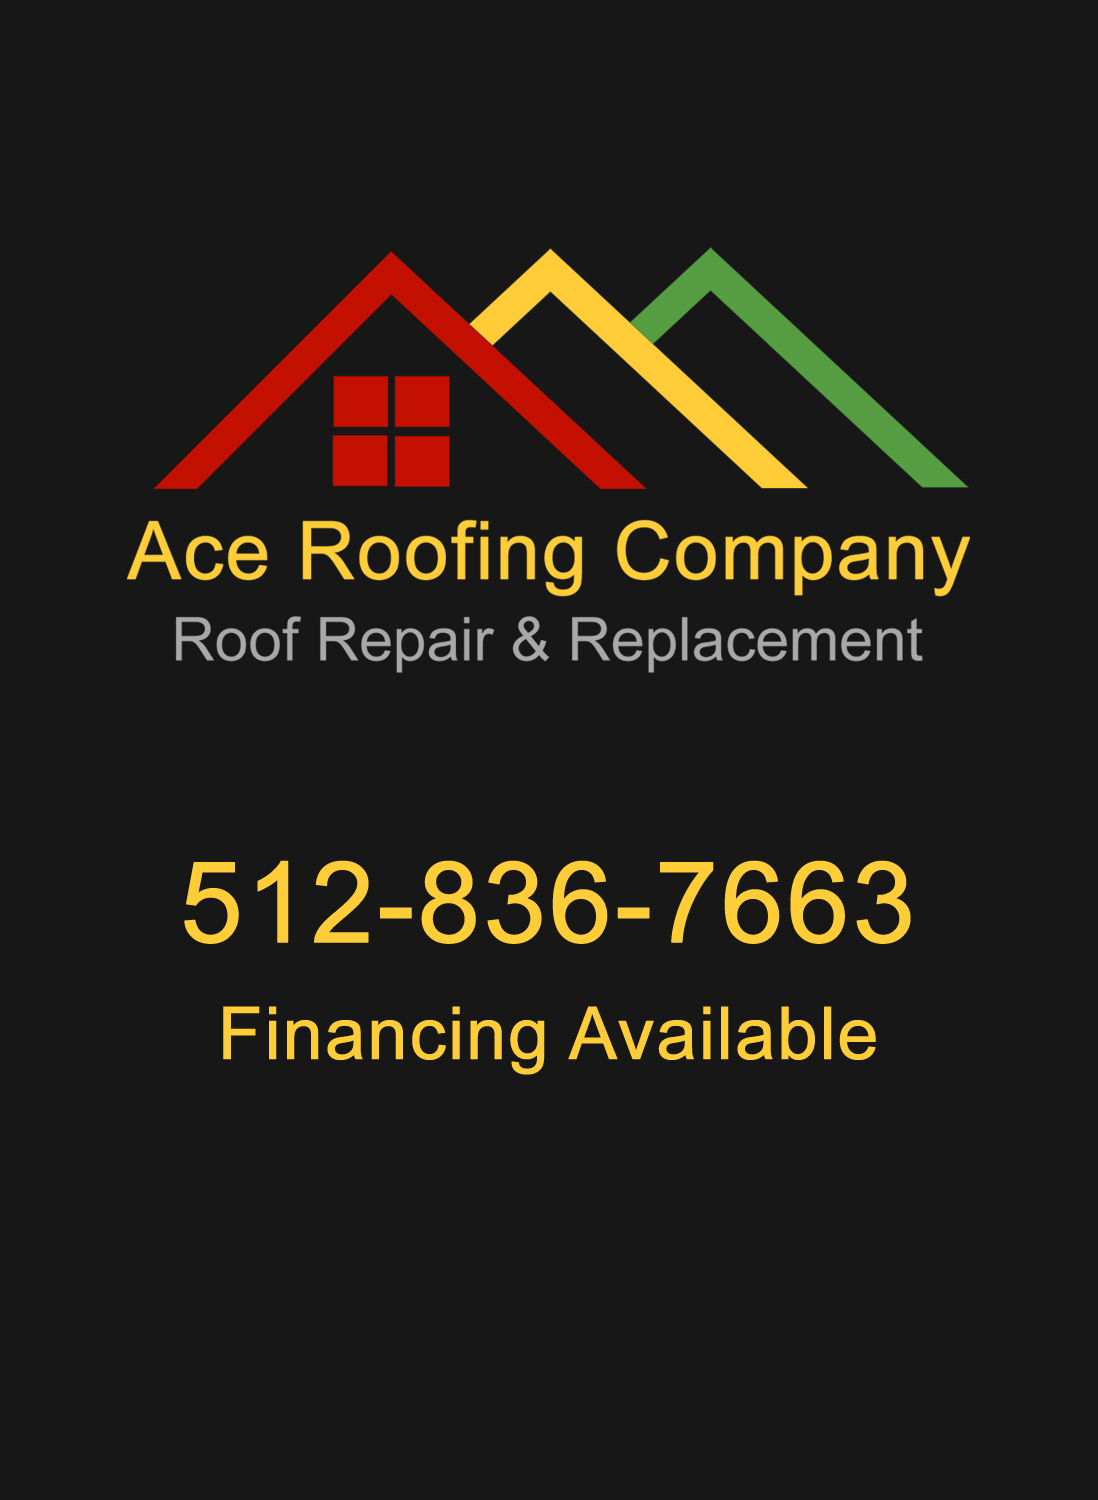 Ace Roofing Company Announces Sixth Angie's List Award For Their Austin Roofing Services